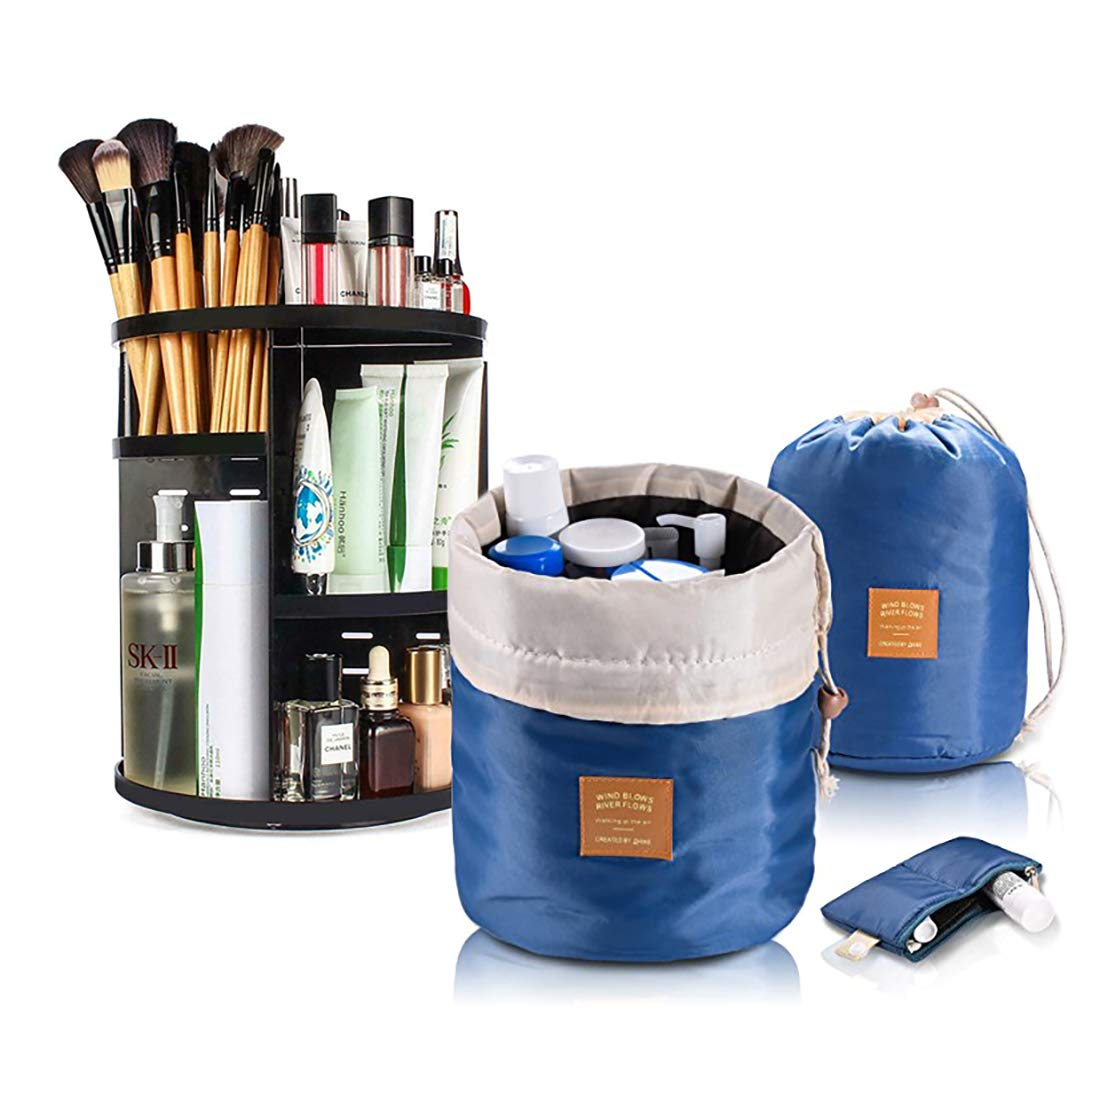 Ahavas Rotating Makeup Organizer, Travel Bag, and Cosmetics Pouch (3 Pc. Set) Large Capacity Storage Rack w/Adjustable Shelves | Classic Bathroom Counter Organization by Ahavas